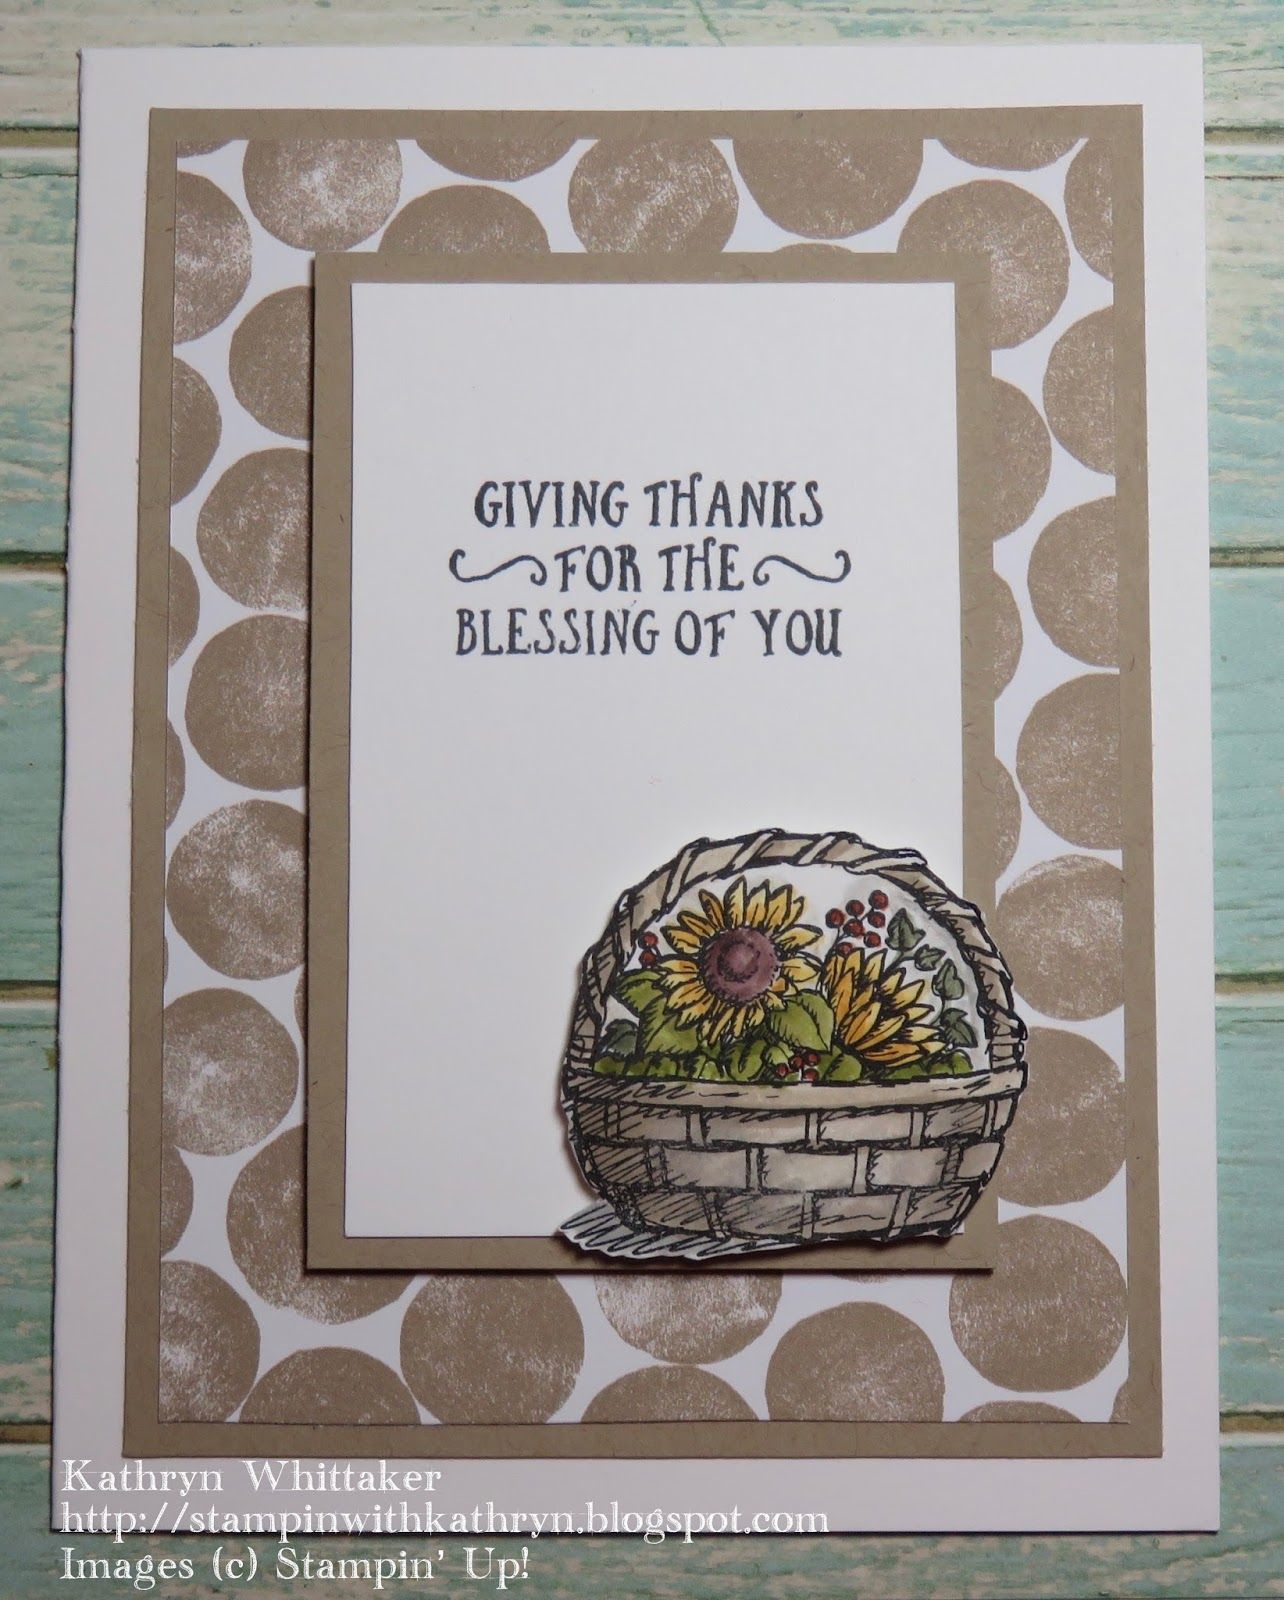 my husband needed a couple of thank you cards this week